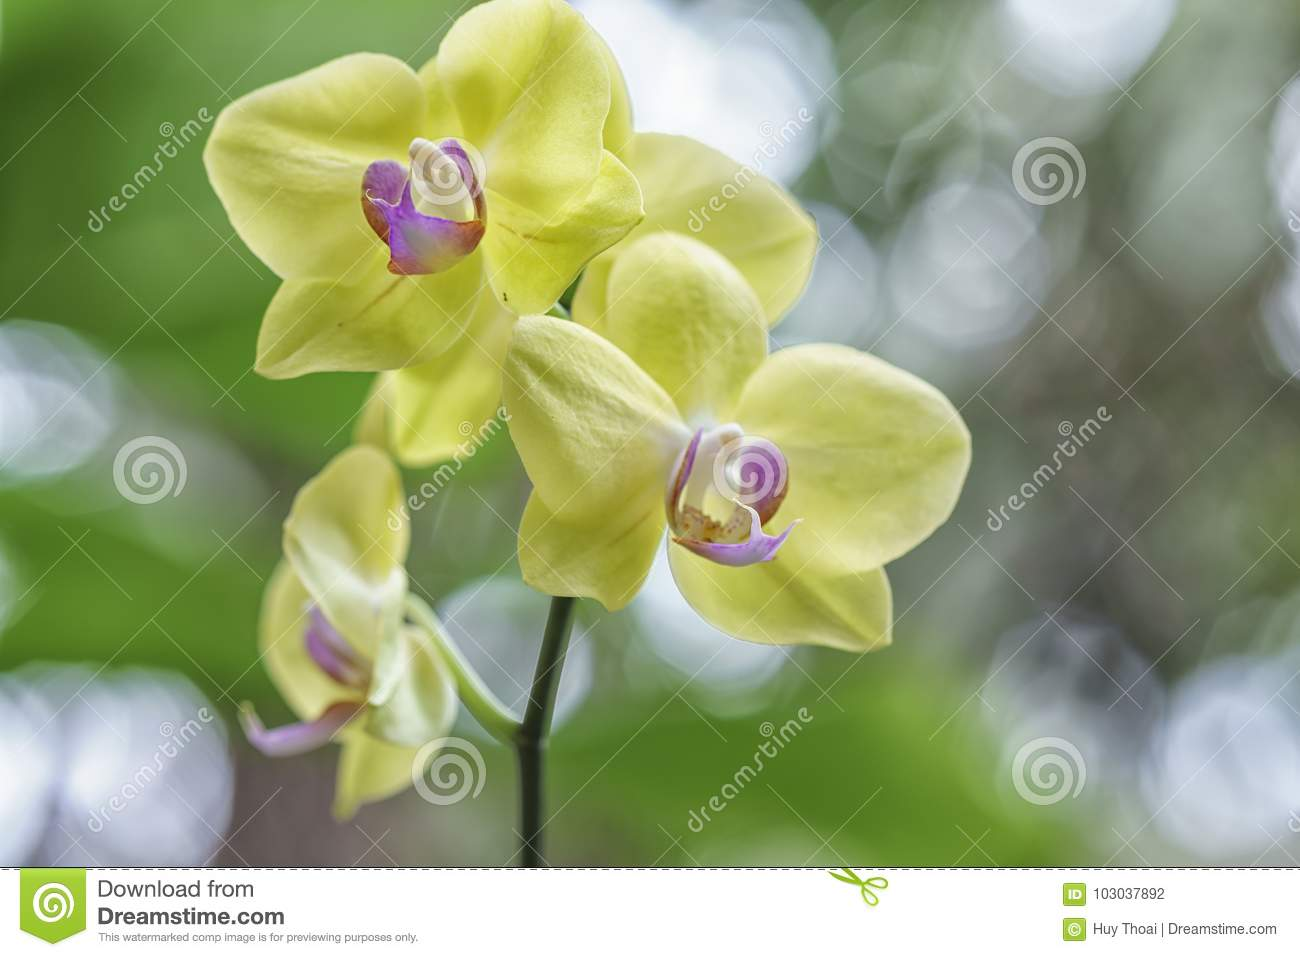 Phalaenopsis orchids flowers in bloom in adorn the beauty of nature royalty free stock photo izmirmasajfo